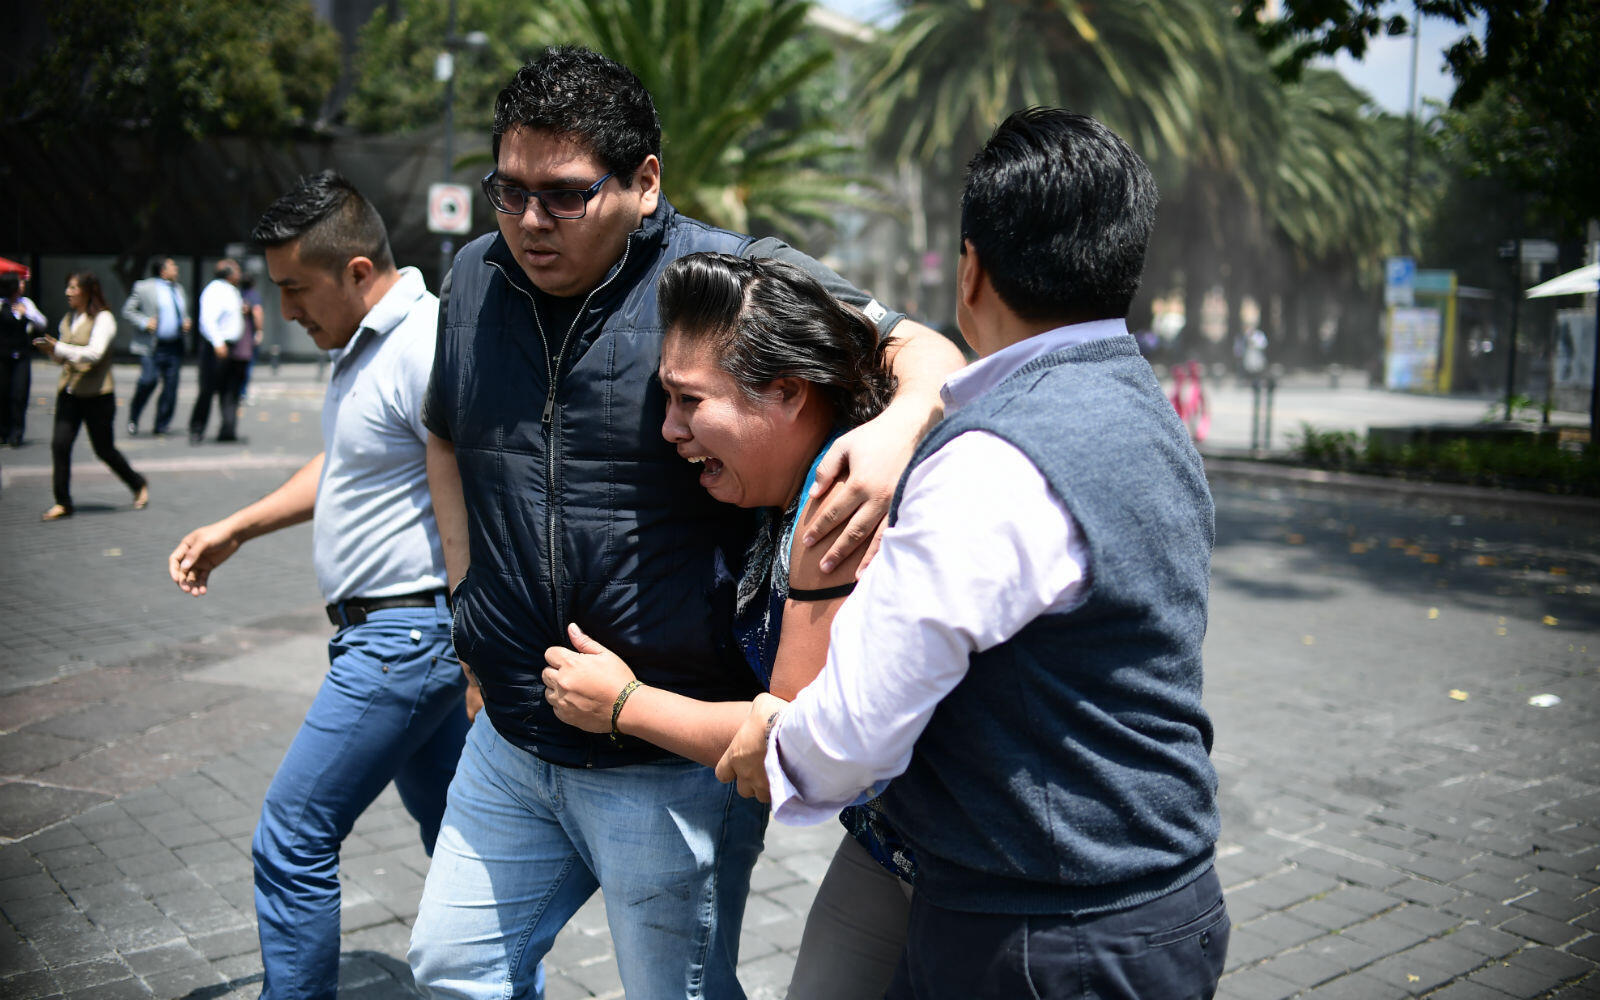 At least 50 buildings collapsed in the earthquake in Mexico City, a city of 20 million.